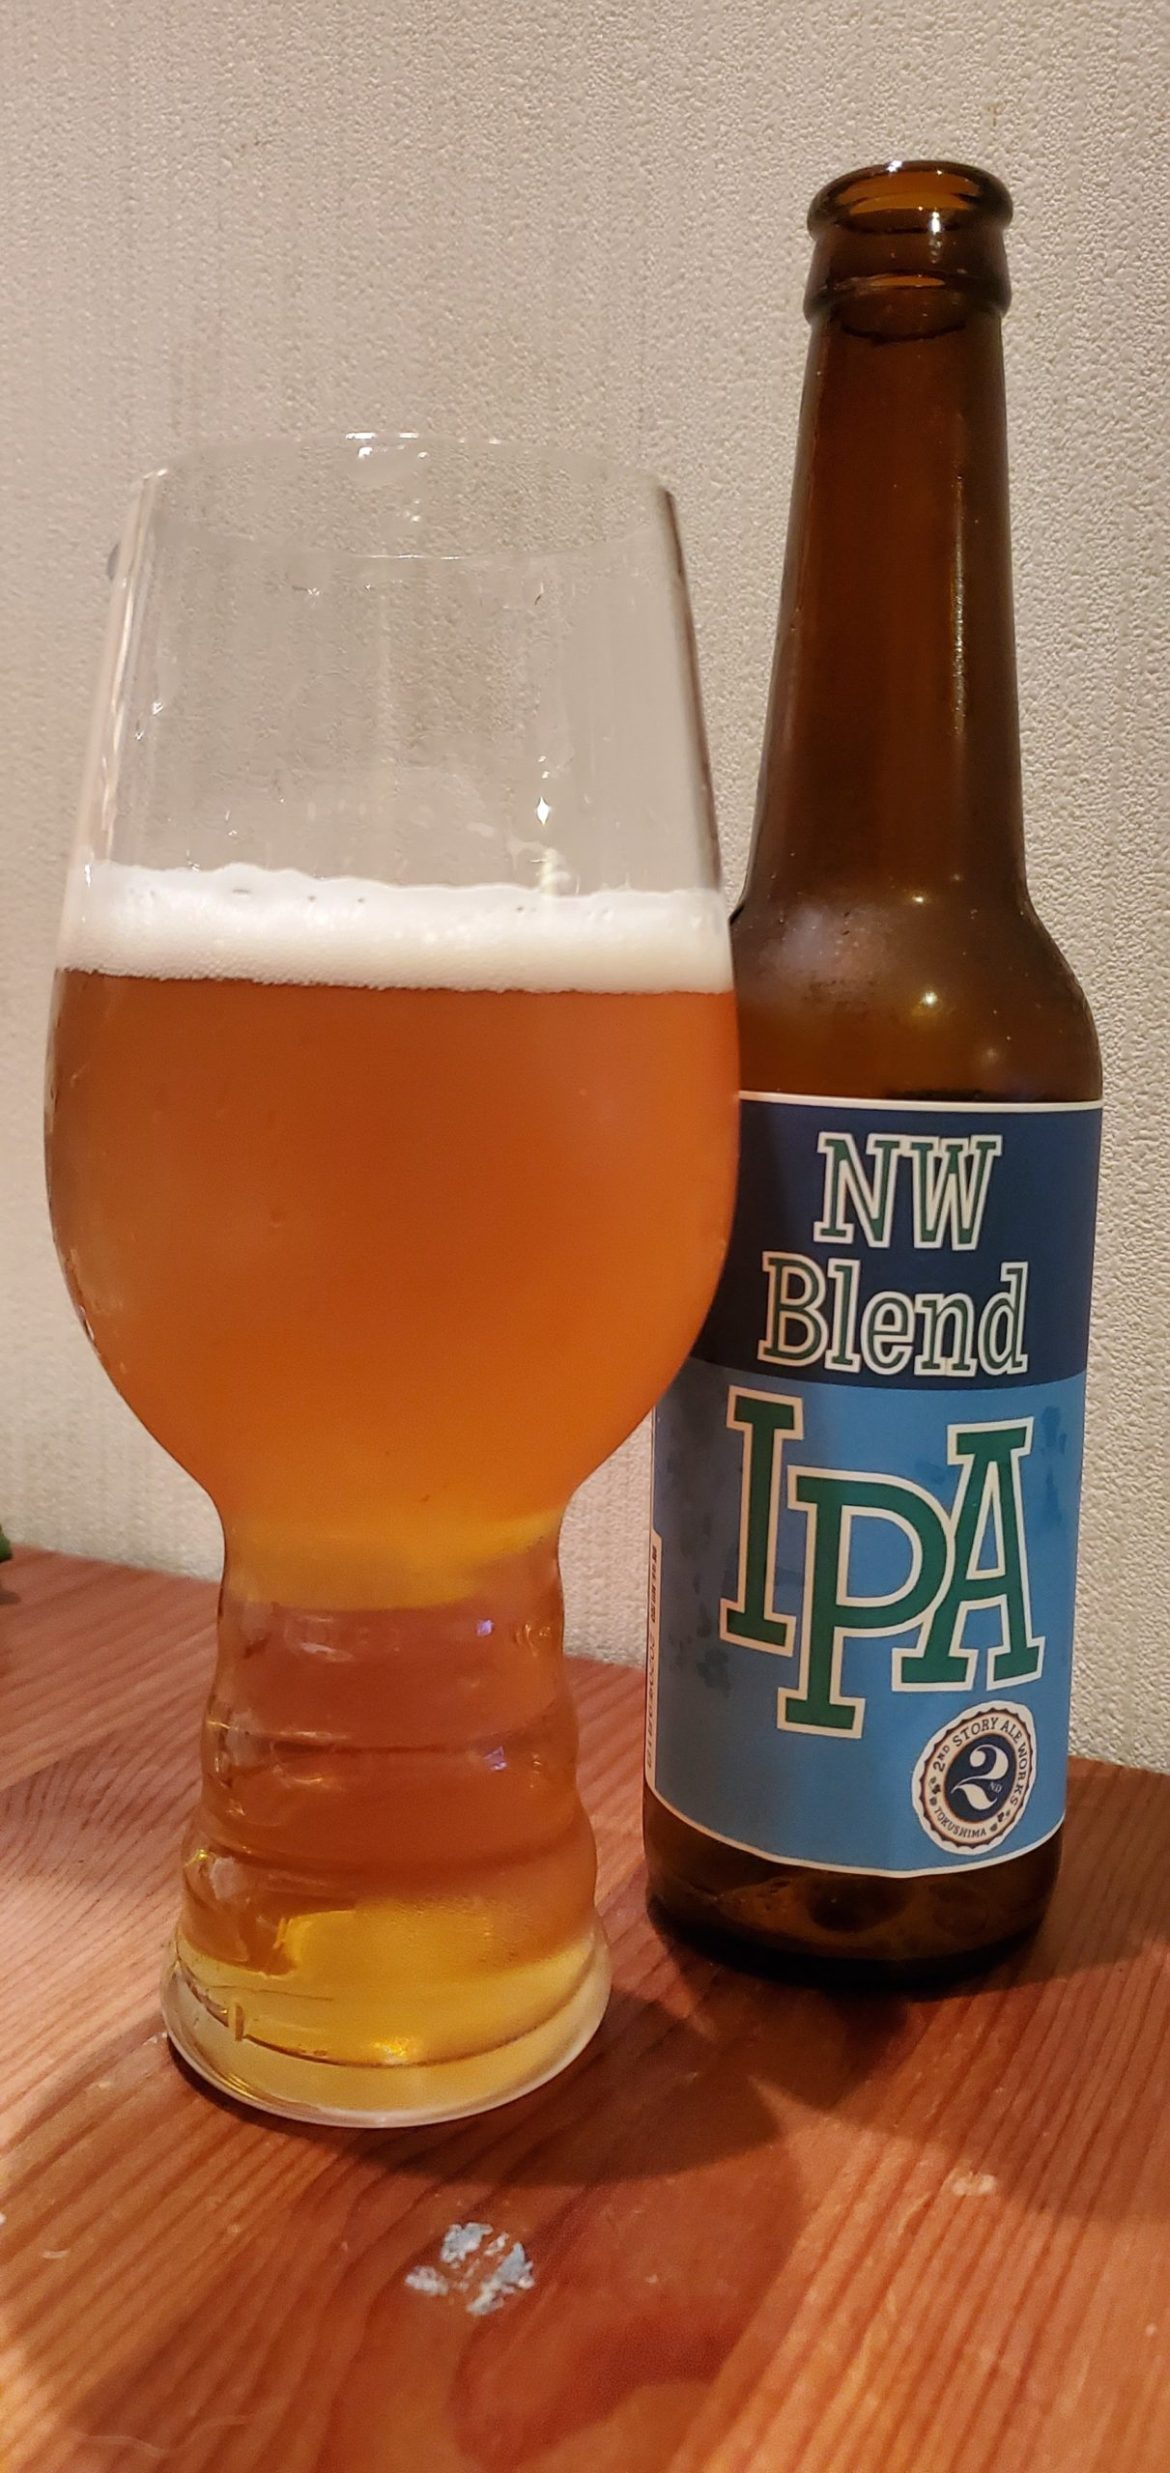 2nd Story New Blend IPA